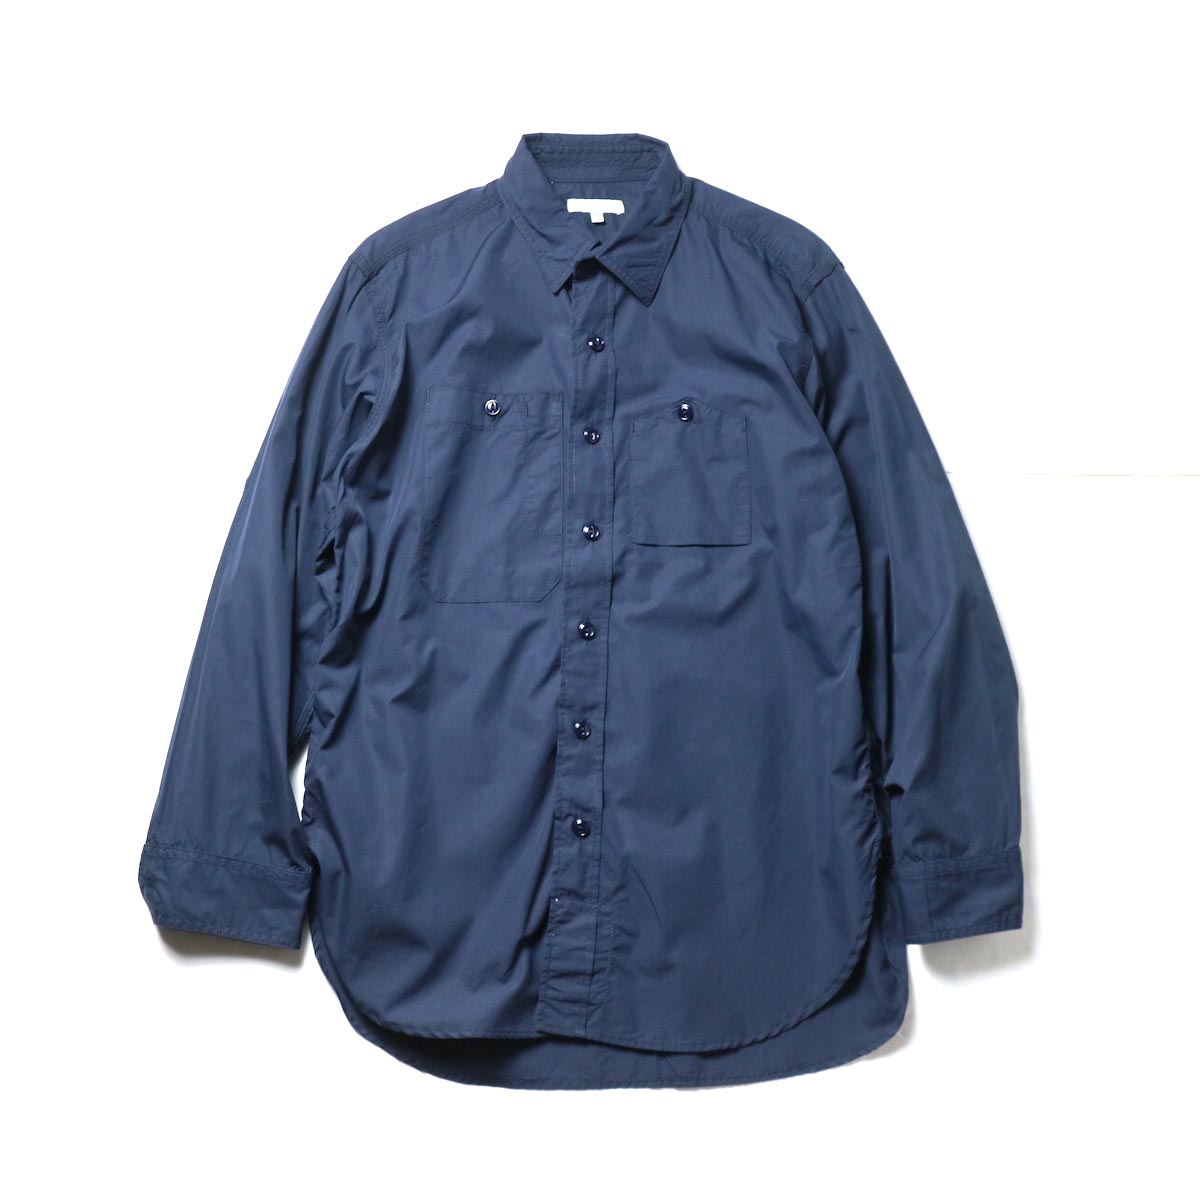 Engineered Garments / Banded Collar Shirt -100's 2Ply Broadcloth (Dk.Navy)